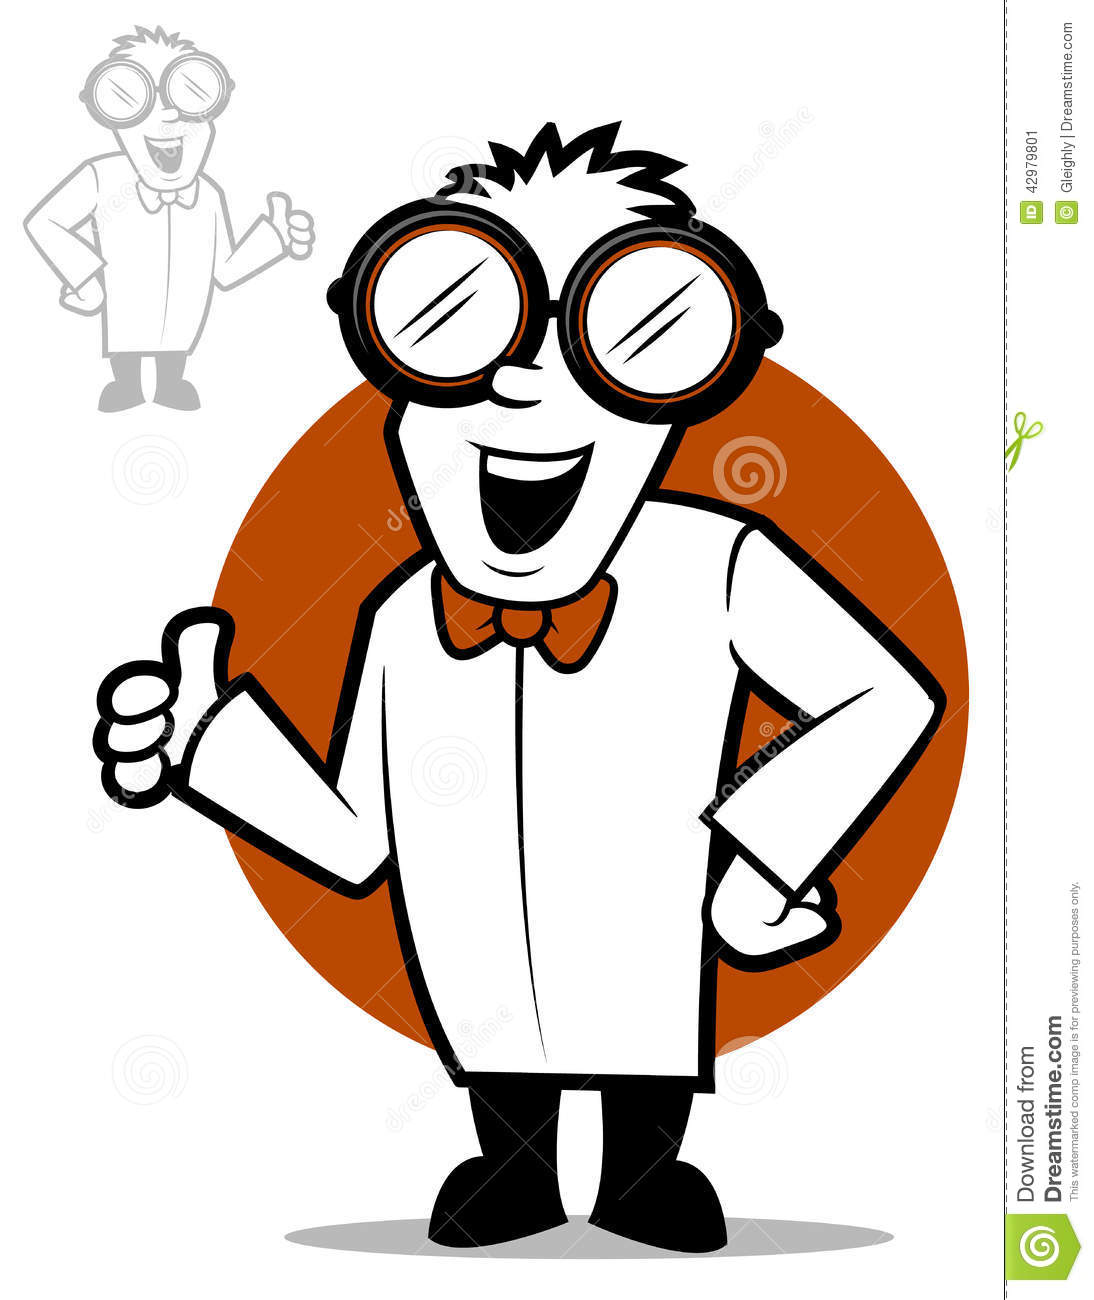 Science Character Stock Vector